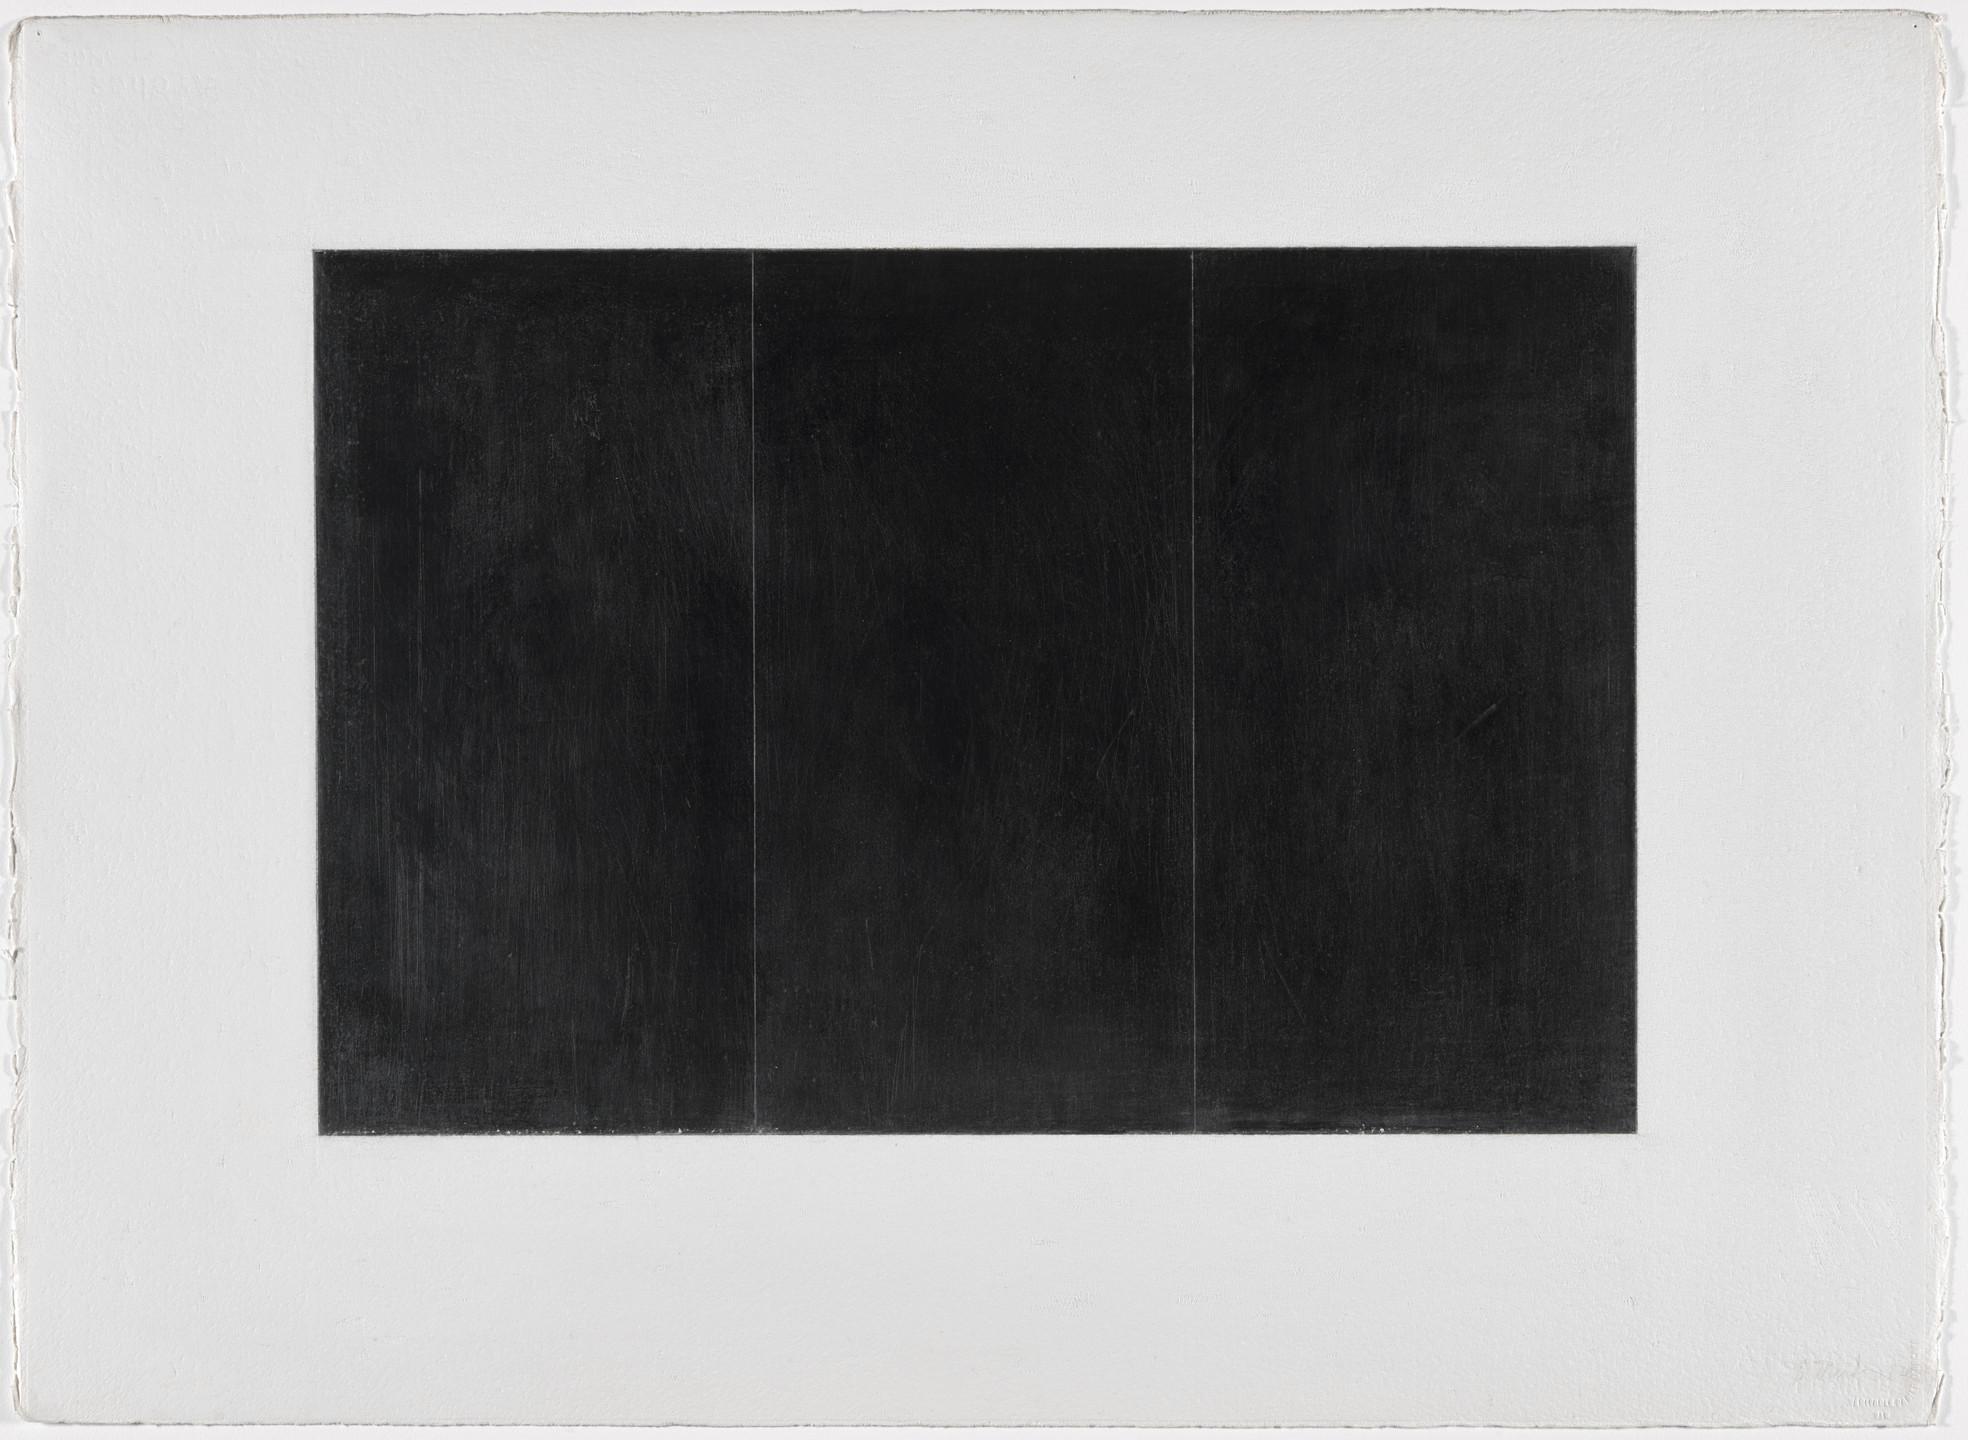 Brice Marden. Grove Group 3. 1972